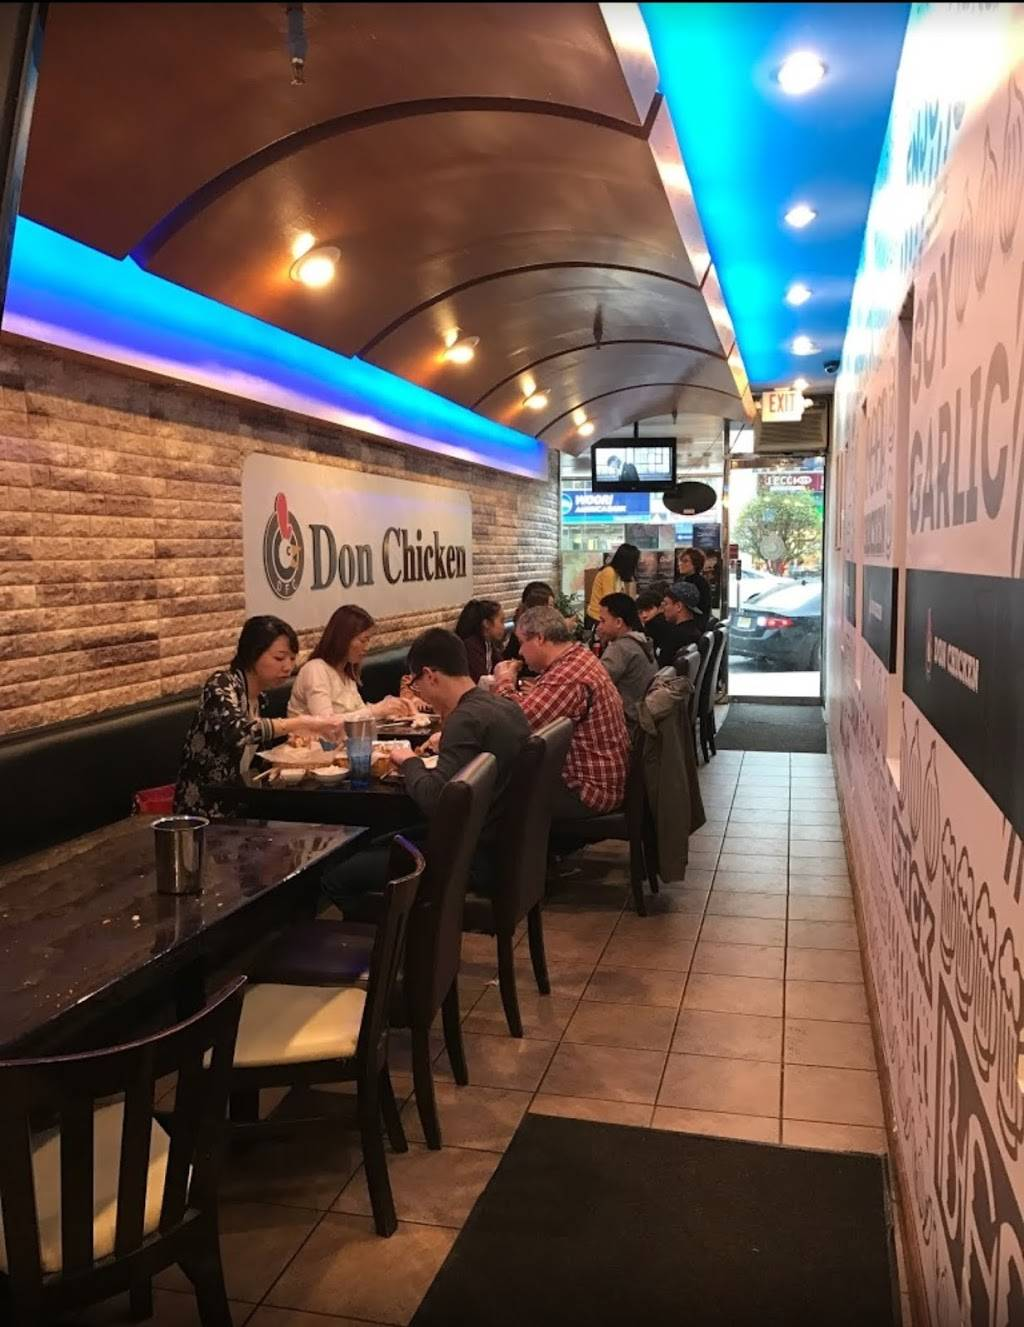 Don Chicken 돈치킨 | restaurant | 232 Broad Ave, Palisades Park, NJ 07650, USA | 2014820852 OR +1 201-482-0852